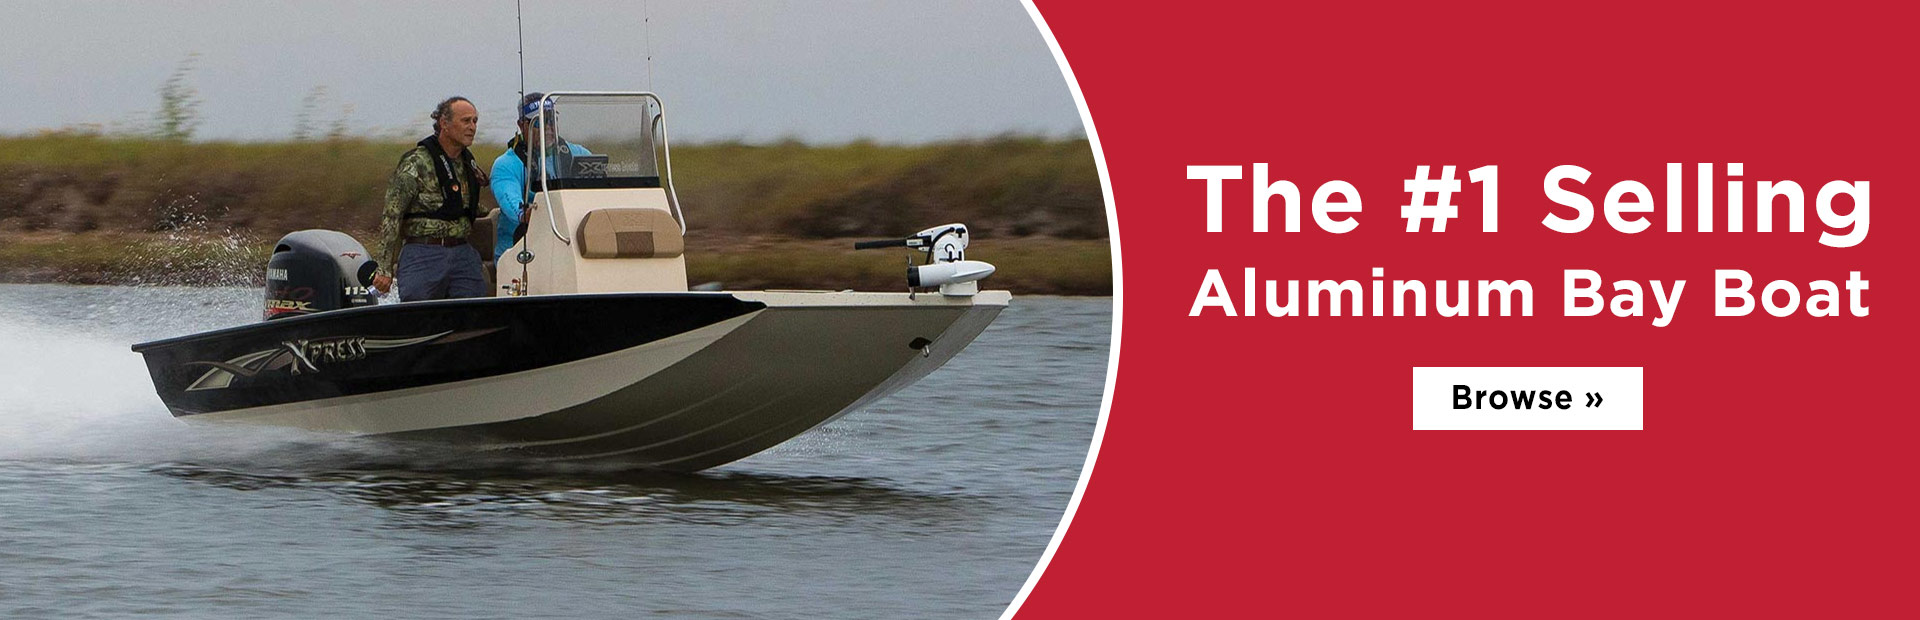 Click here to browse the #1 selling aluminum bay boat.